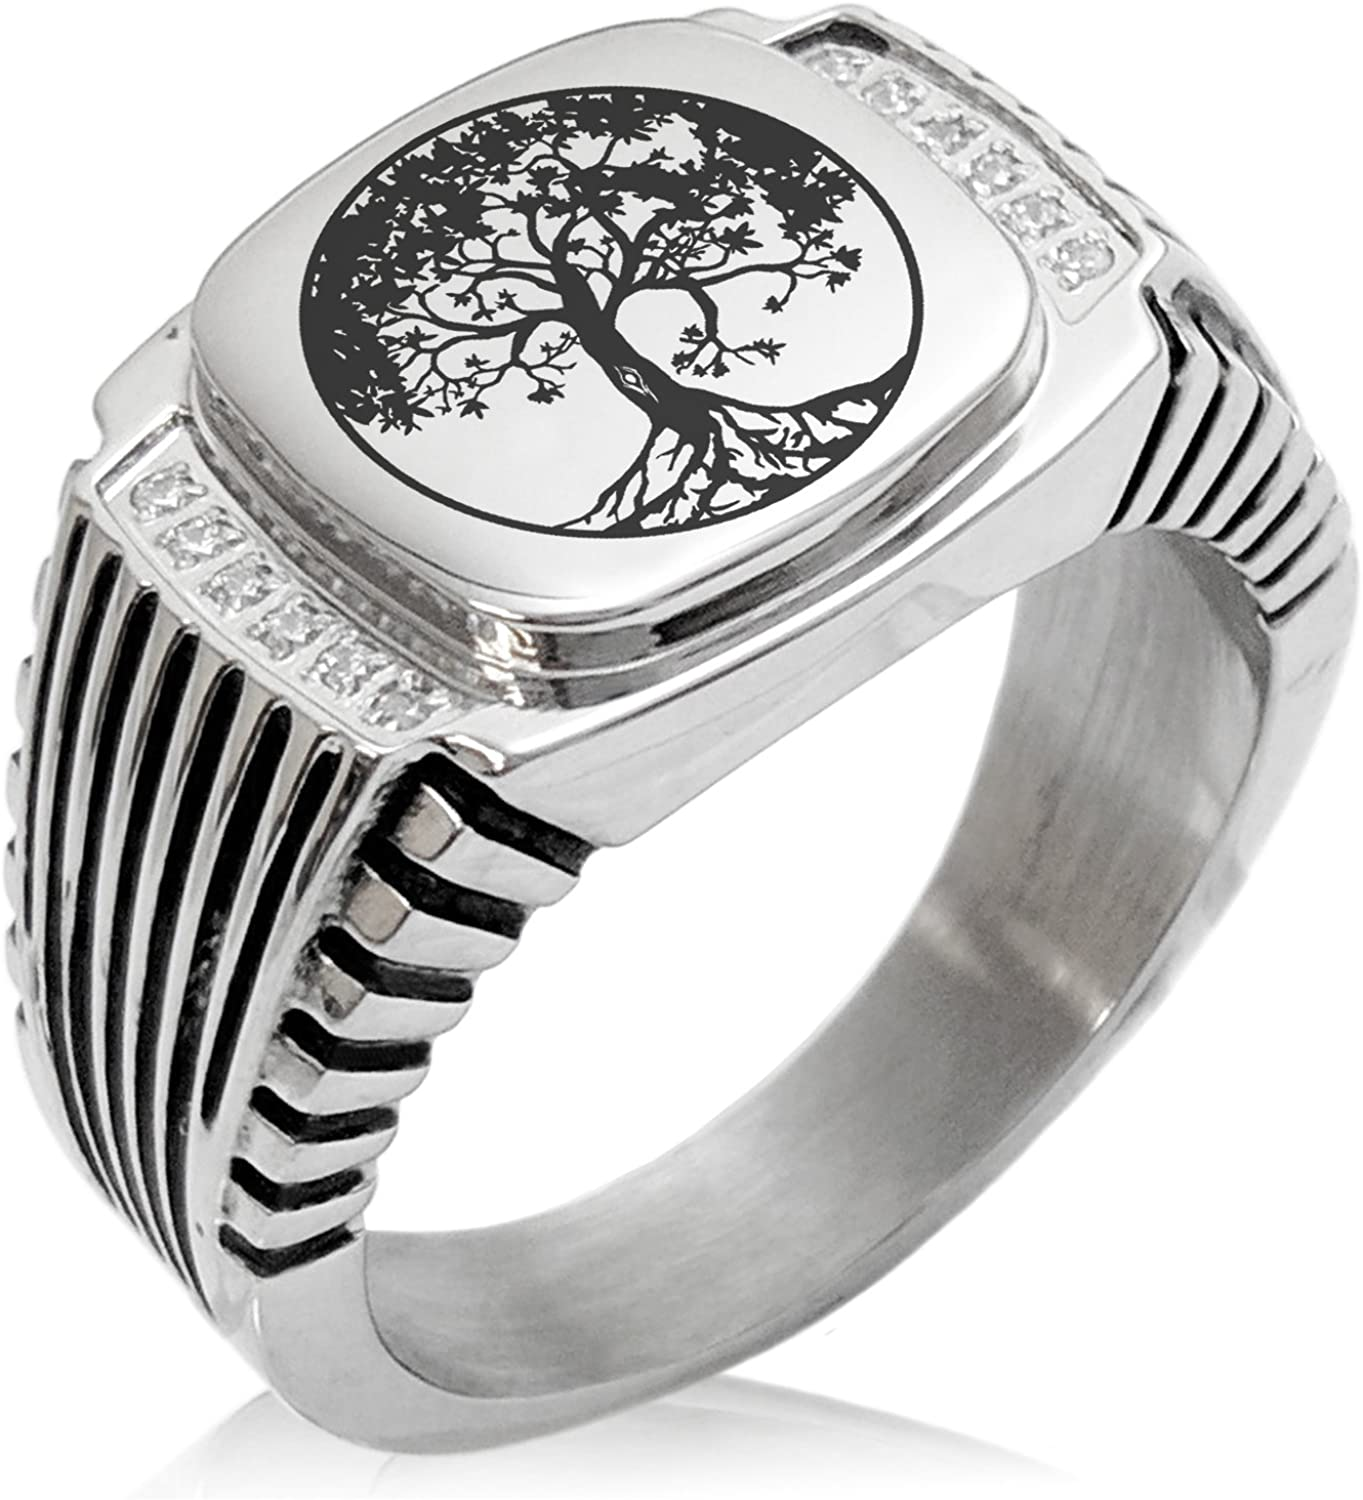 Tioneer Stainless Steel Tree of Life CZ Ribbed Needle Stripe Pattern Biker Style Polished Ring